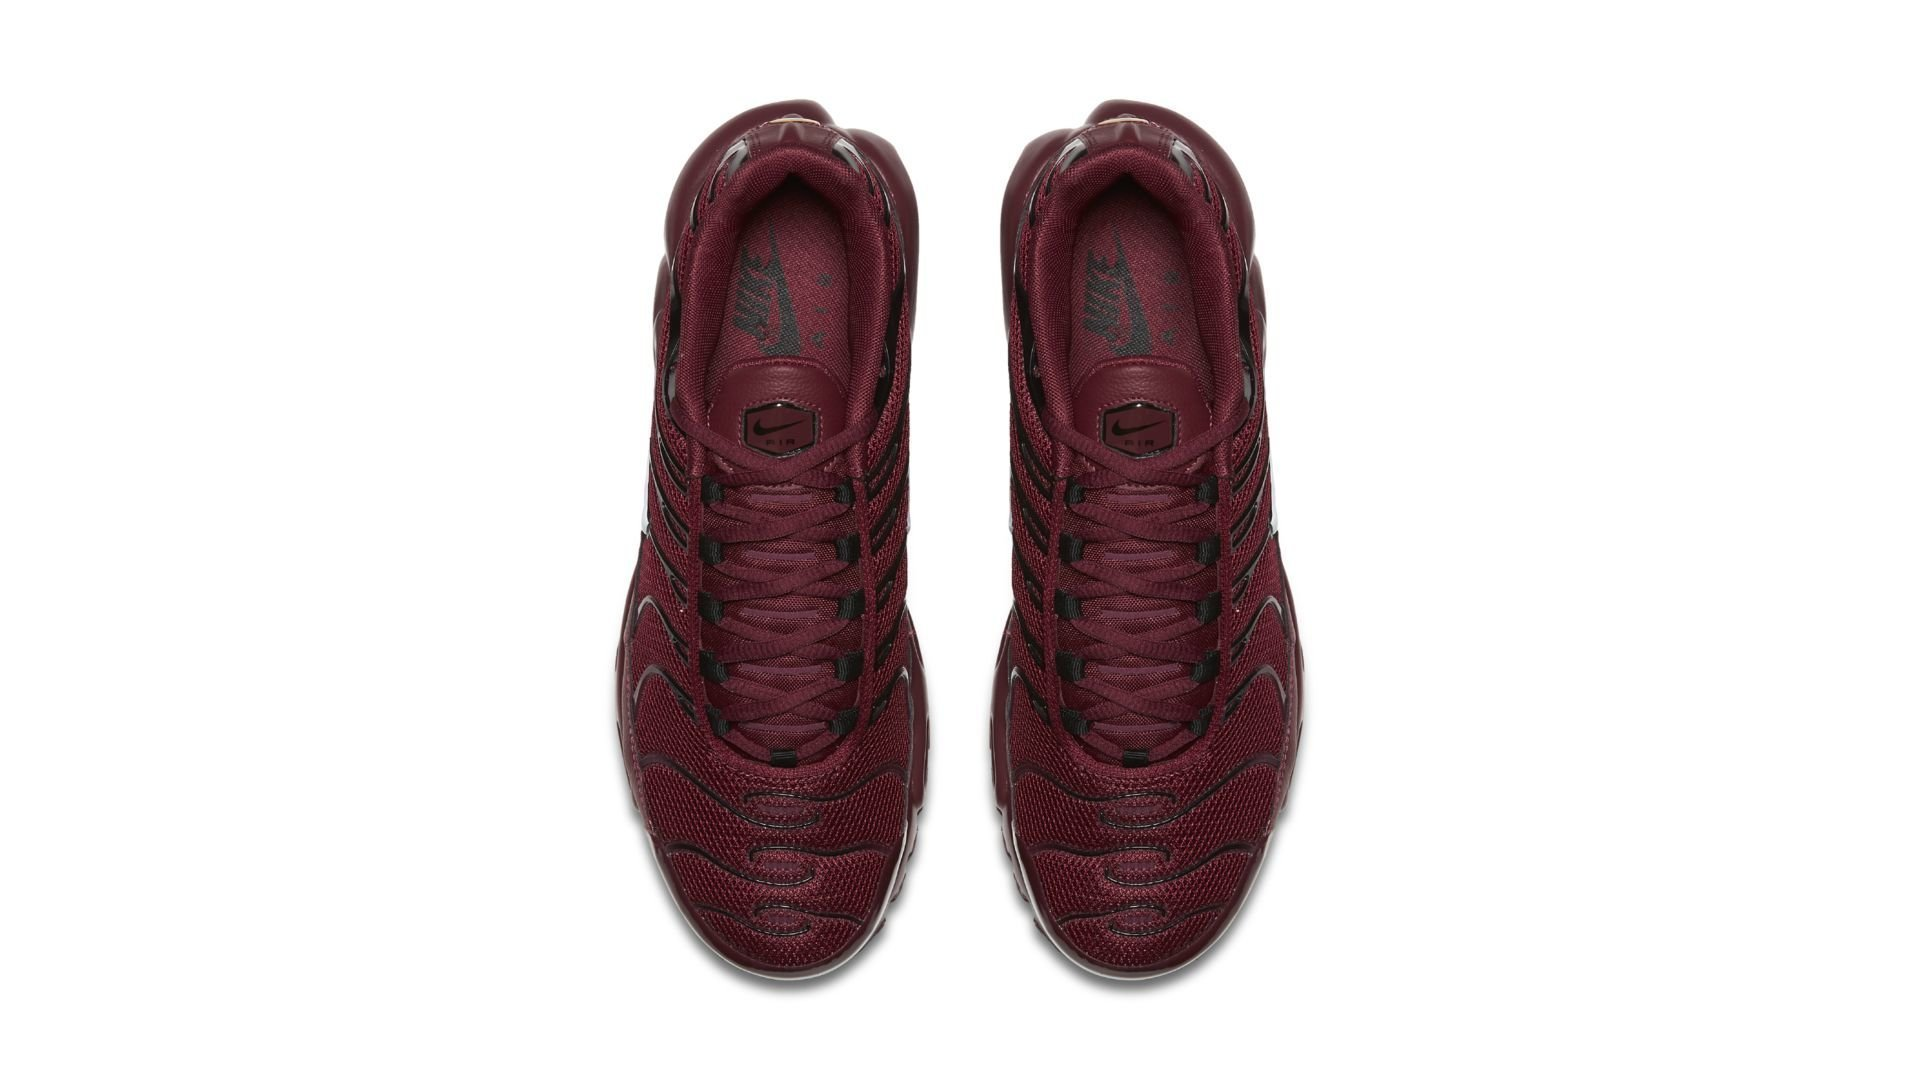 Nike Air Max Plus Team Red (852630-602)